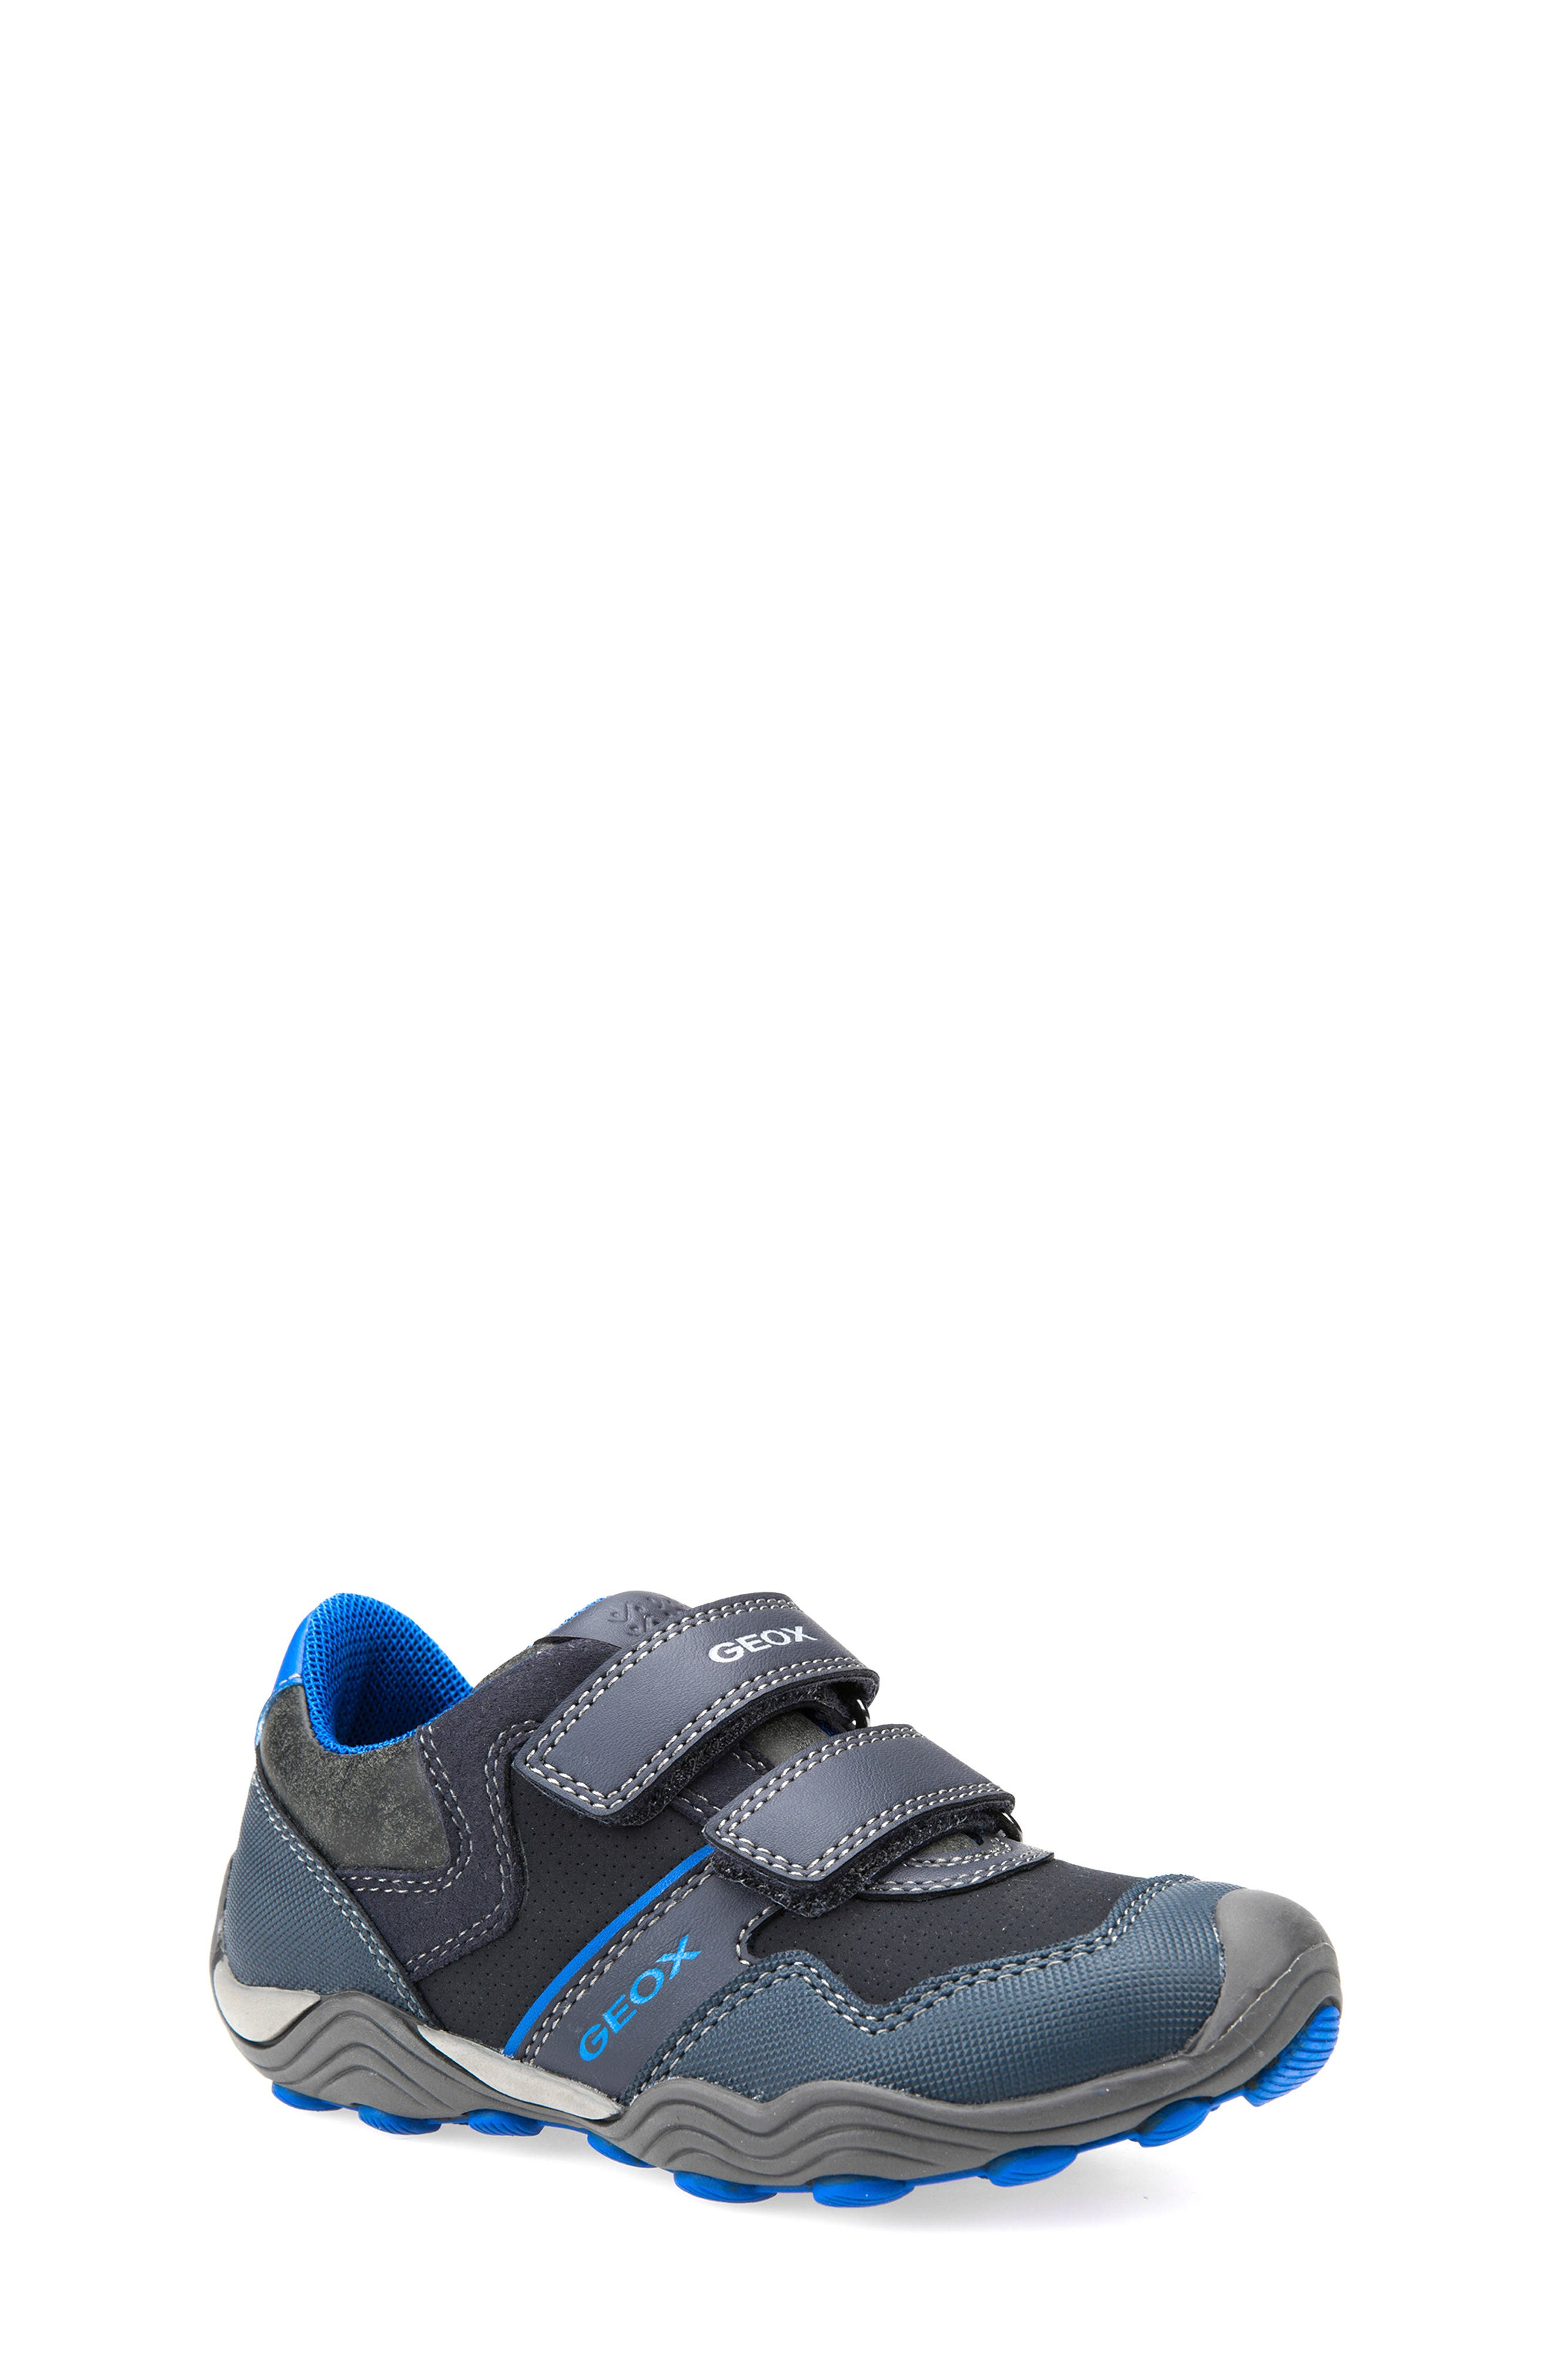 Image of GEOX Arno 13 Sneaker